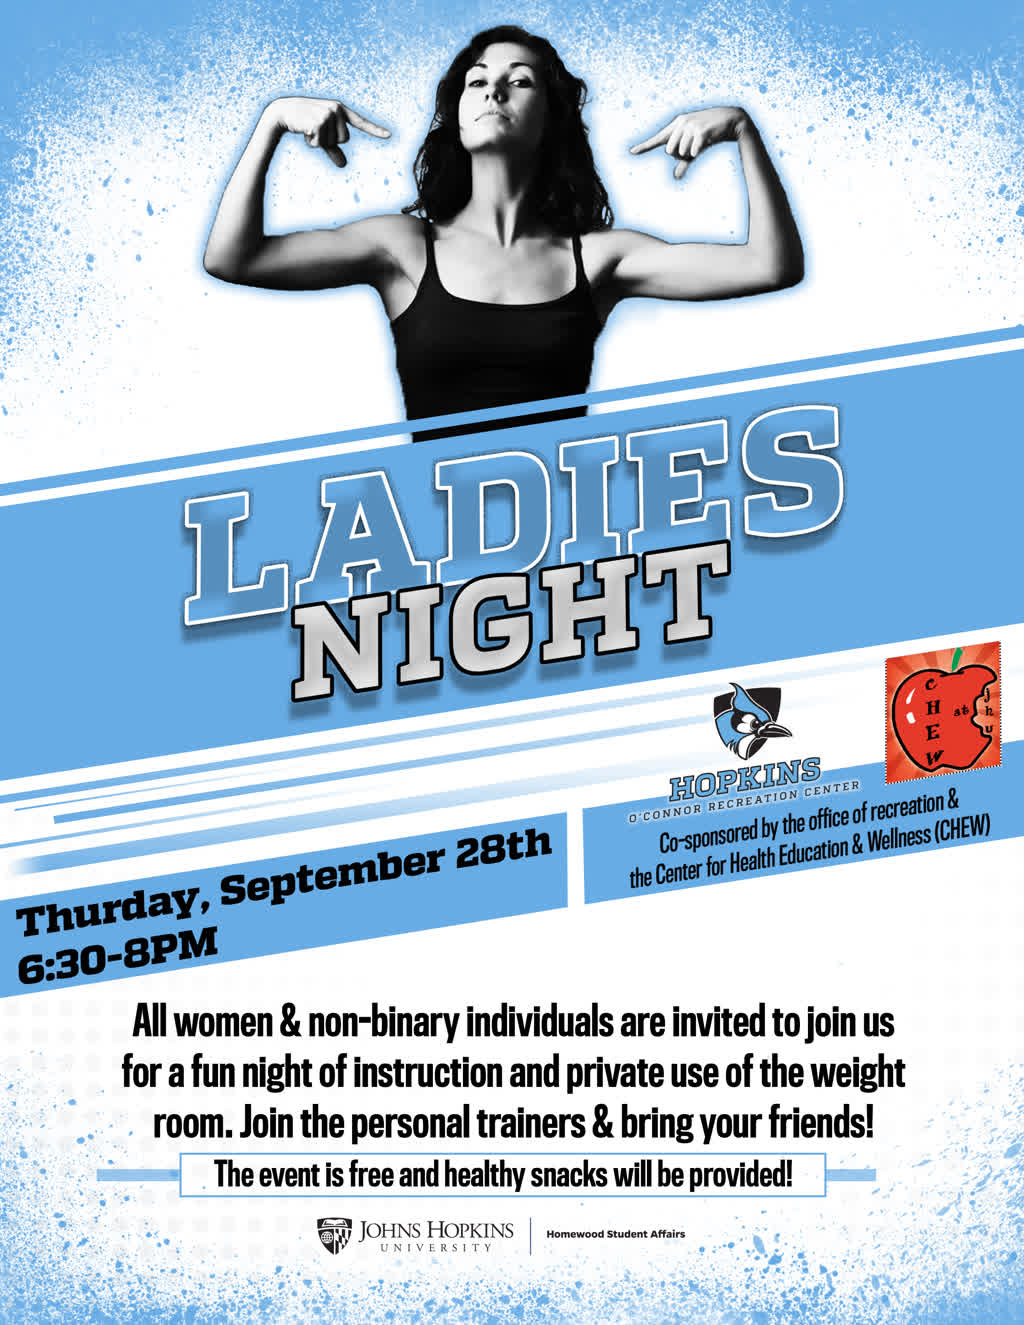 Information regarding Ladies Night is as follows Create Your Own Tags: is #Fitness and Start date is September 12 2017 and End Date is September 24 2017 and File is Browse and Affiliation is Department and File Name is Ladies-Night_ORCA_comp.jpg and Name is Ladies Night and Group Name is Recreation and Panel is Side and Email is vina.mktg@jhu.edu and